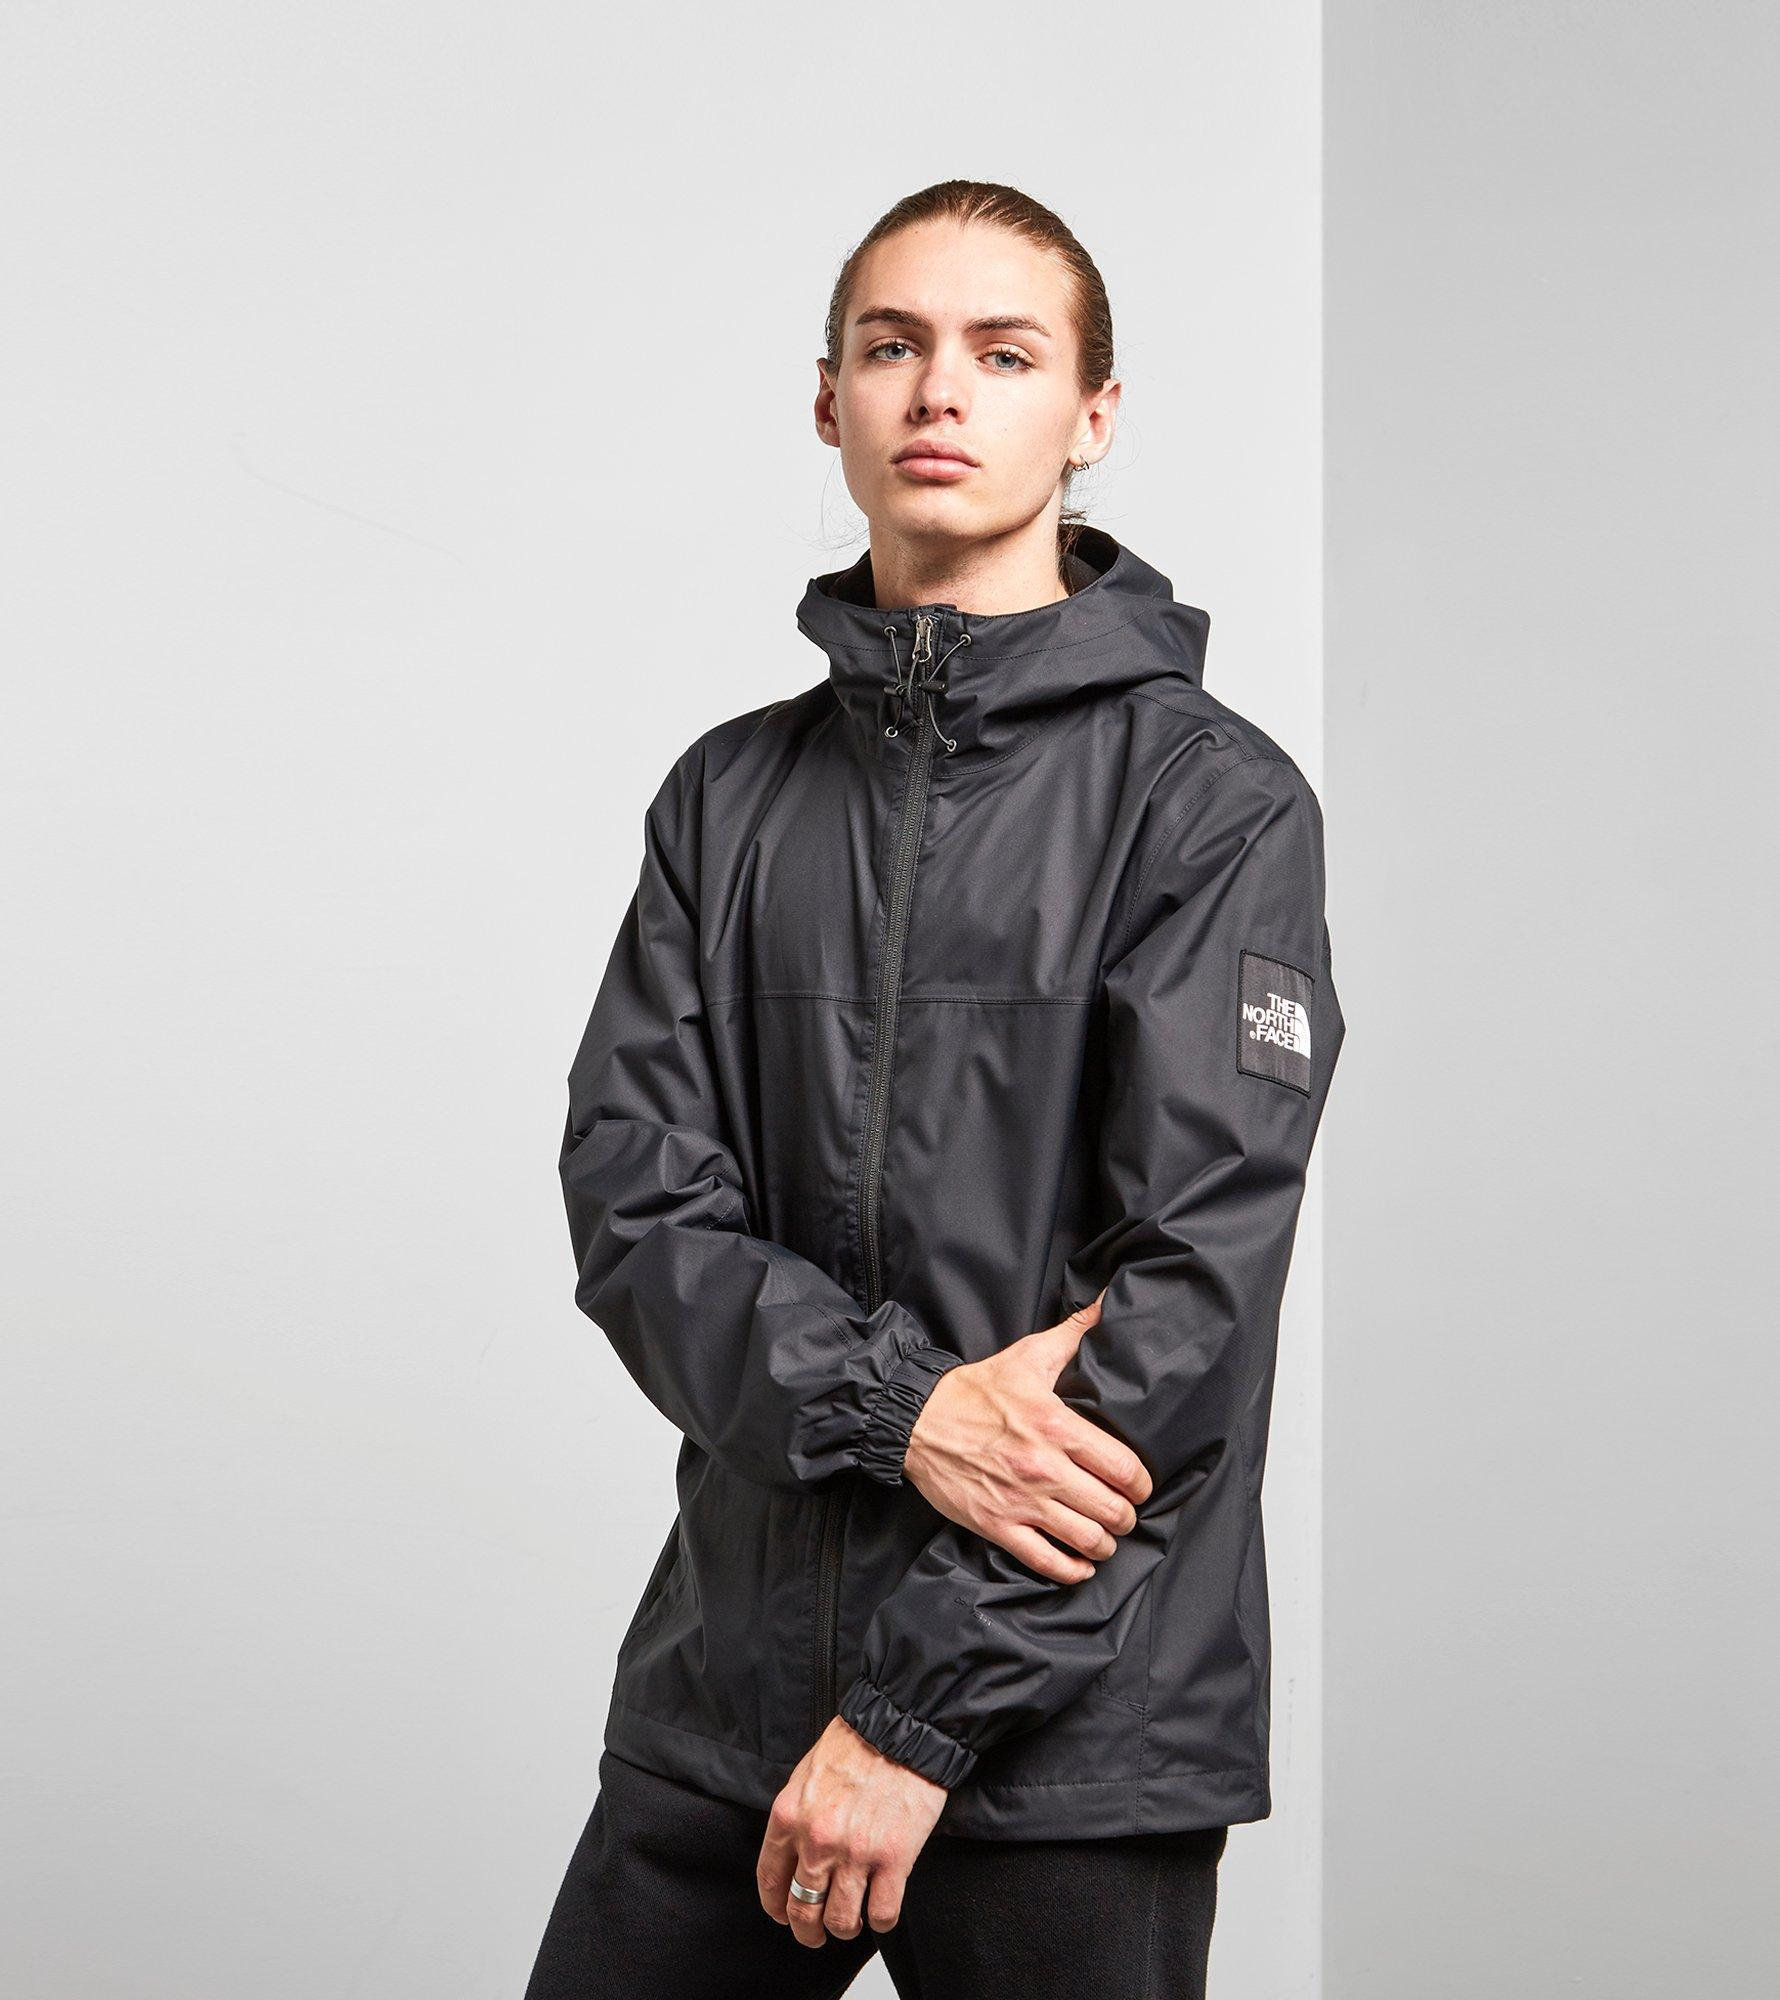 The North Face Black Label Mountain Jacket in Black - Lyst f8759f090d89